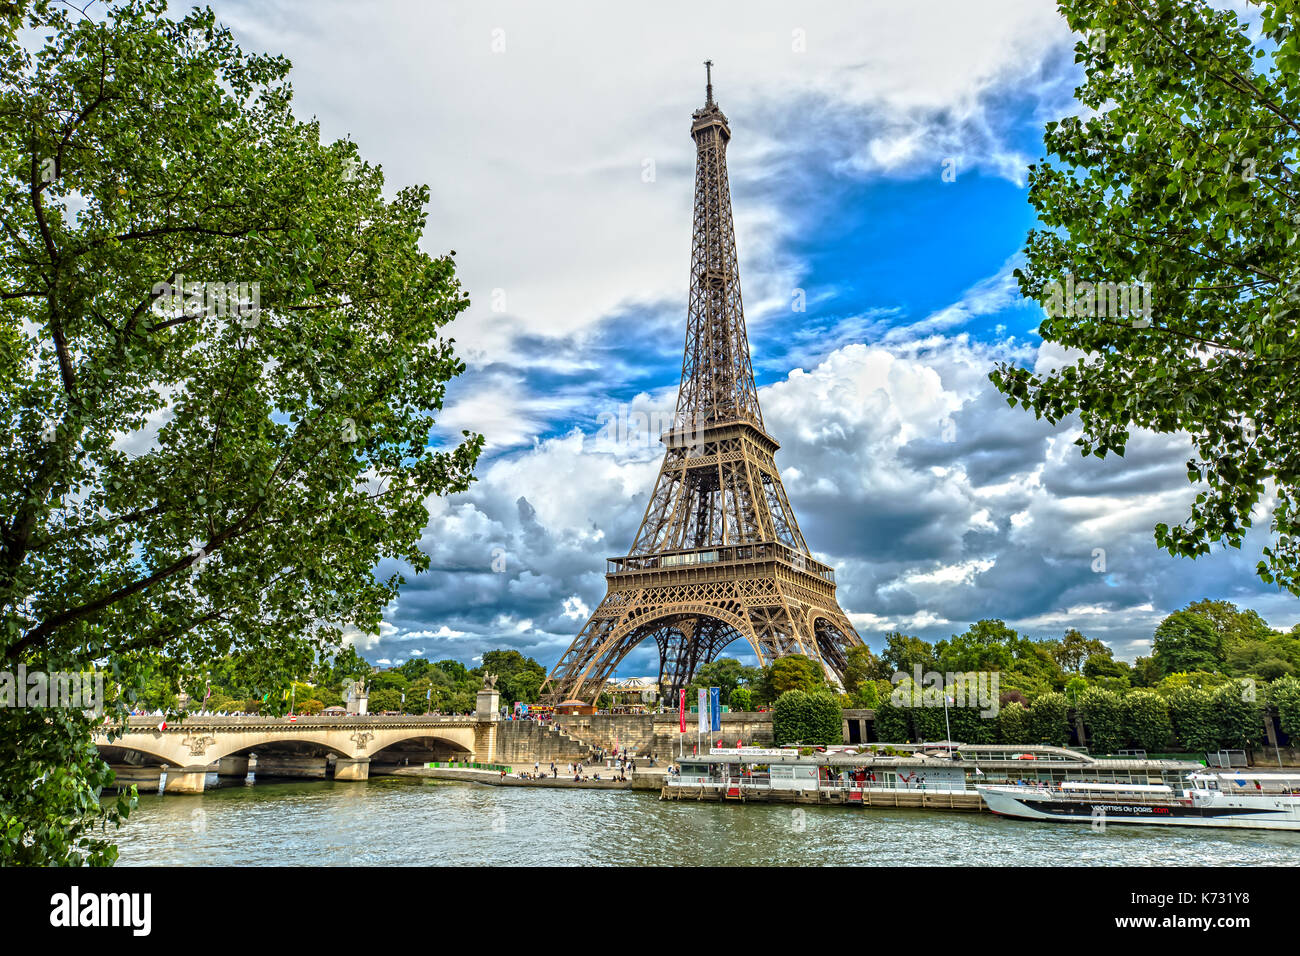 The Eiffel Tower and the Seine - Stock Image